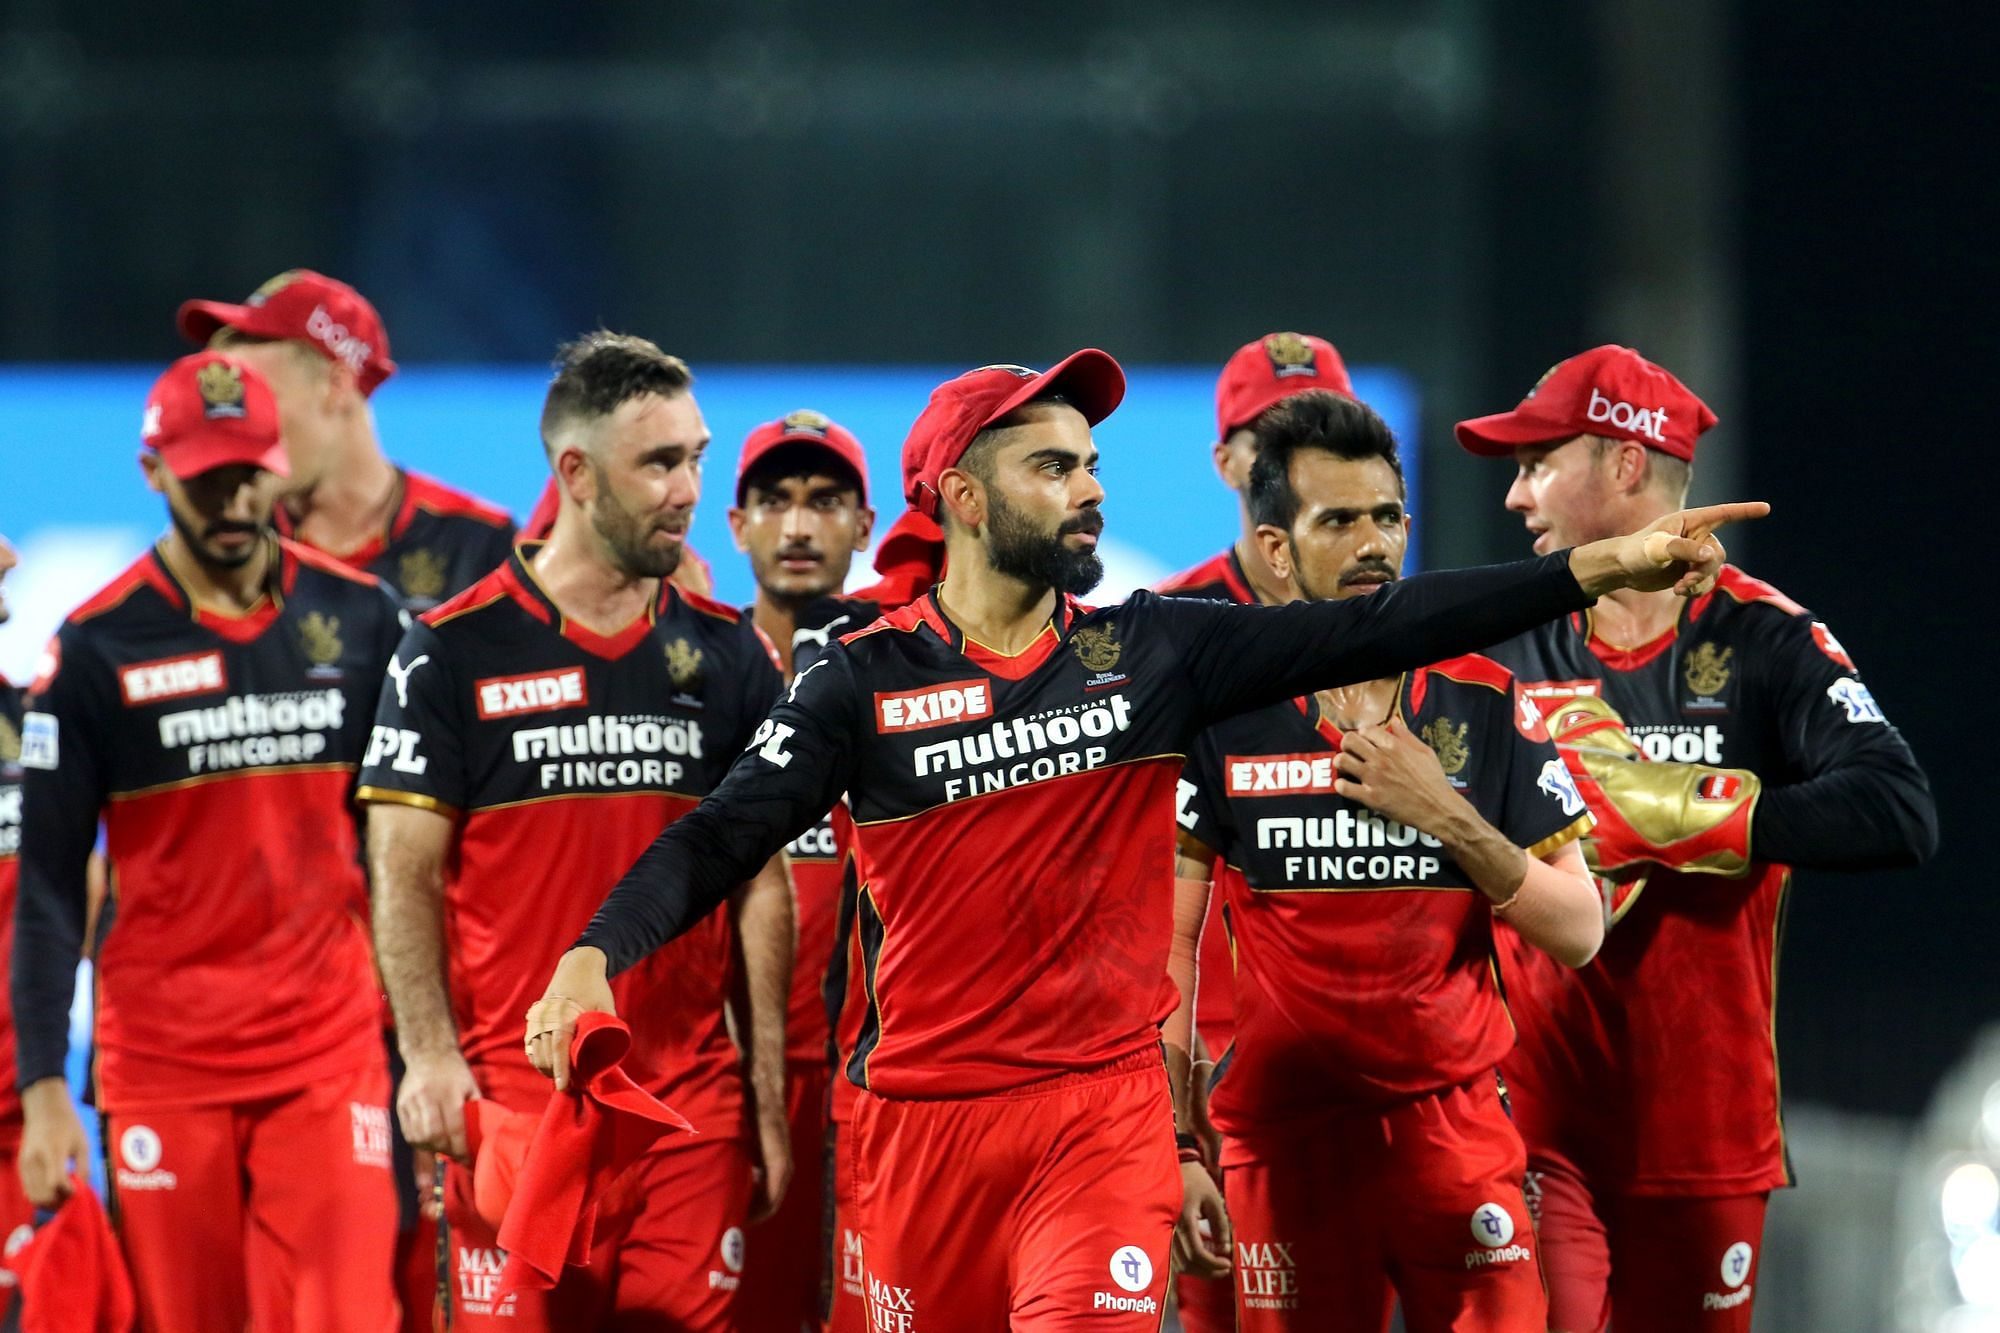 IPL 2021: Royal Challengers Bangalore (RCB) Updated Squad, Schedule, Time, And Venue